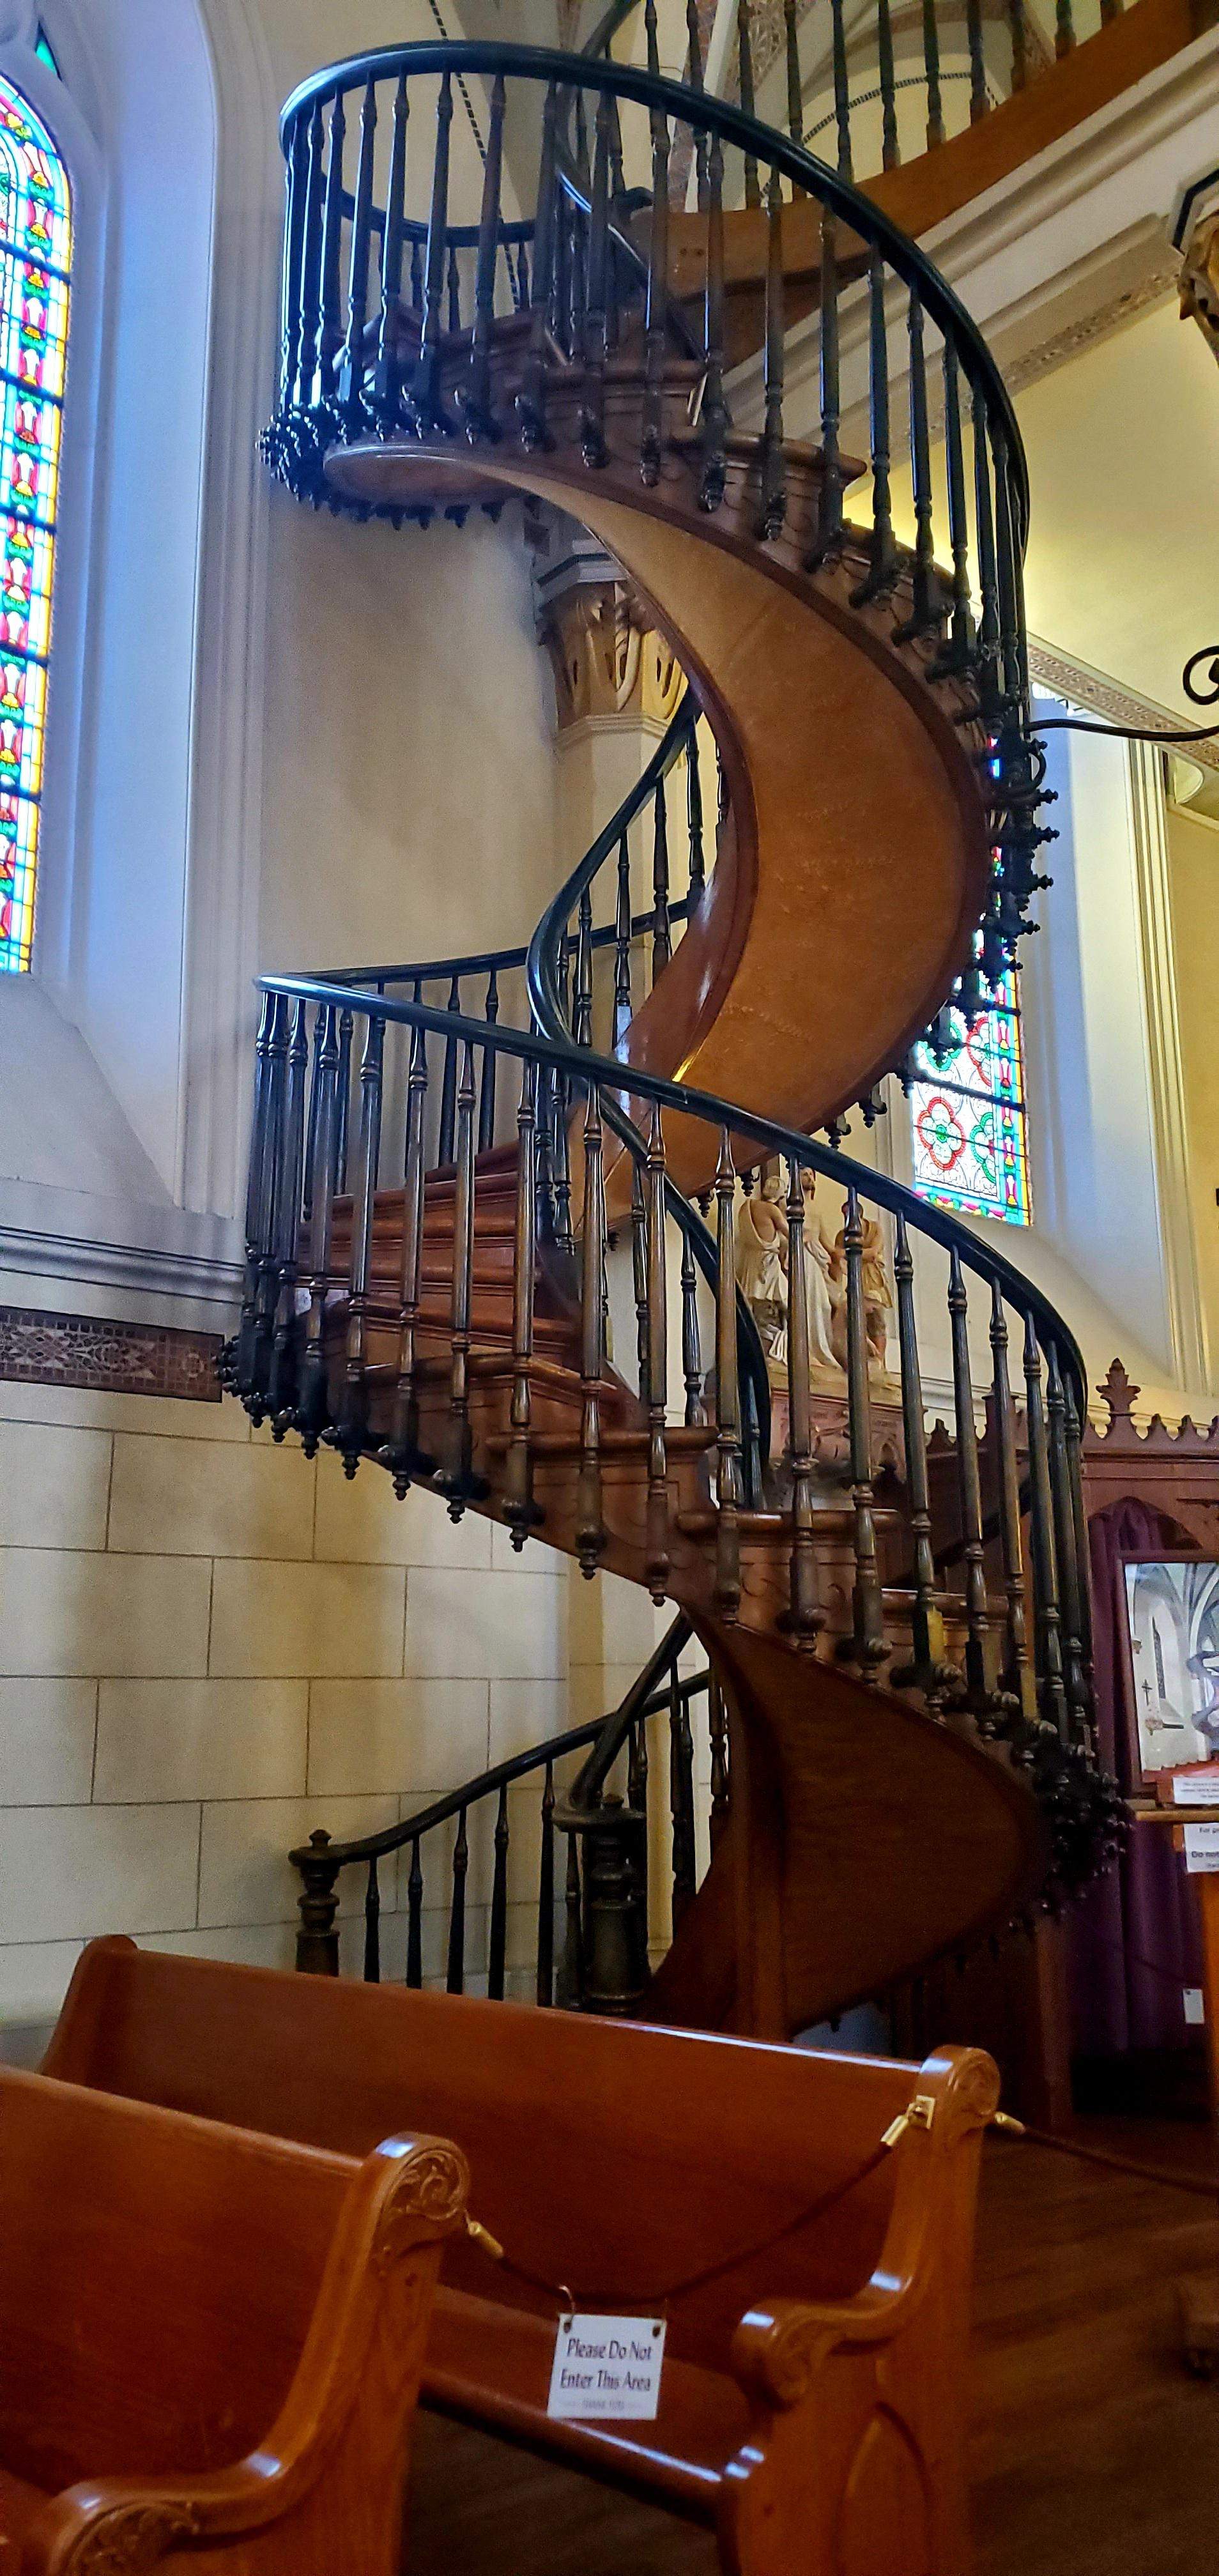 Helix Staircase Of Loretto Chapel Santa Fe Nm Crazystairs   Stairway Of Loretto Chapel   Original   Sister   Story   Spiral   Mysterious